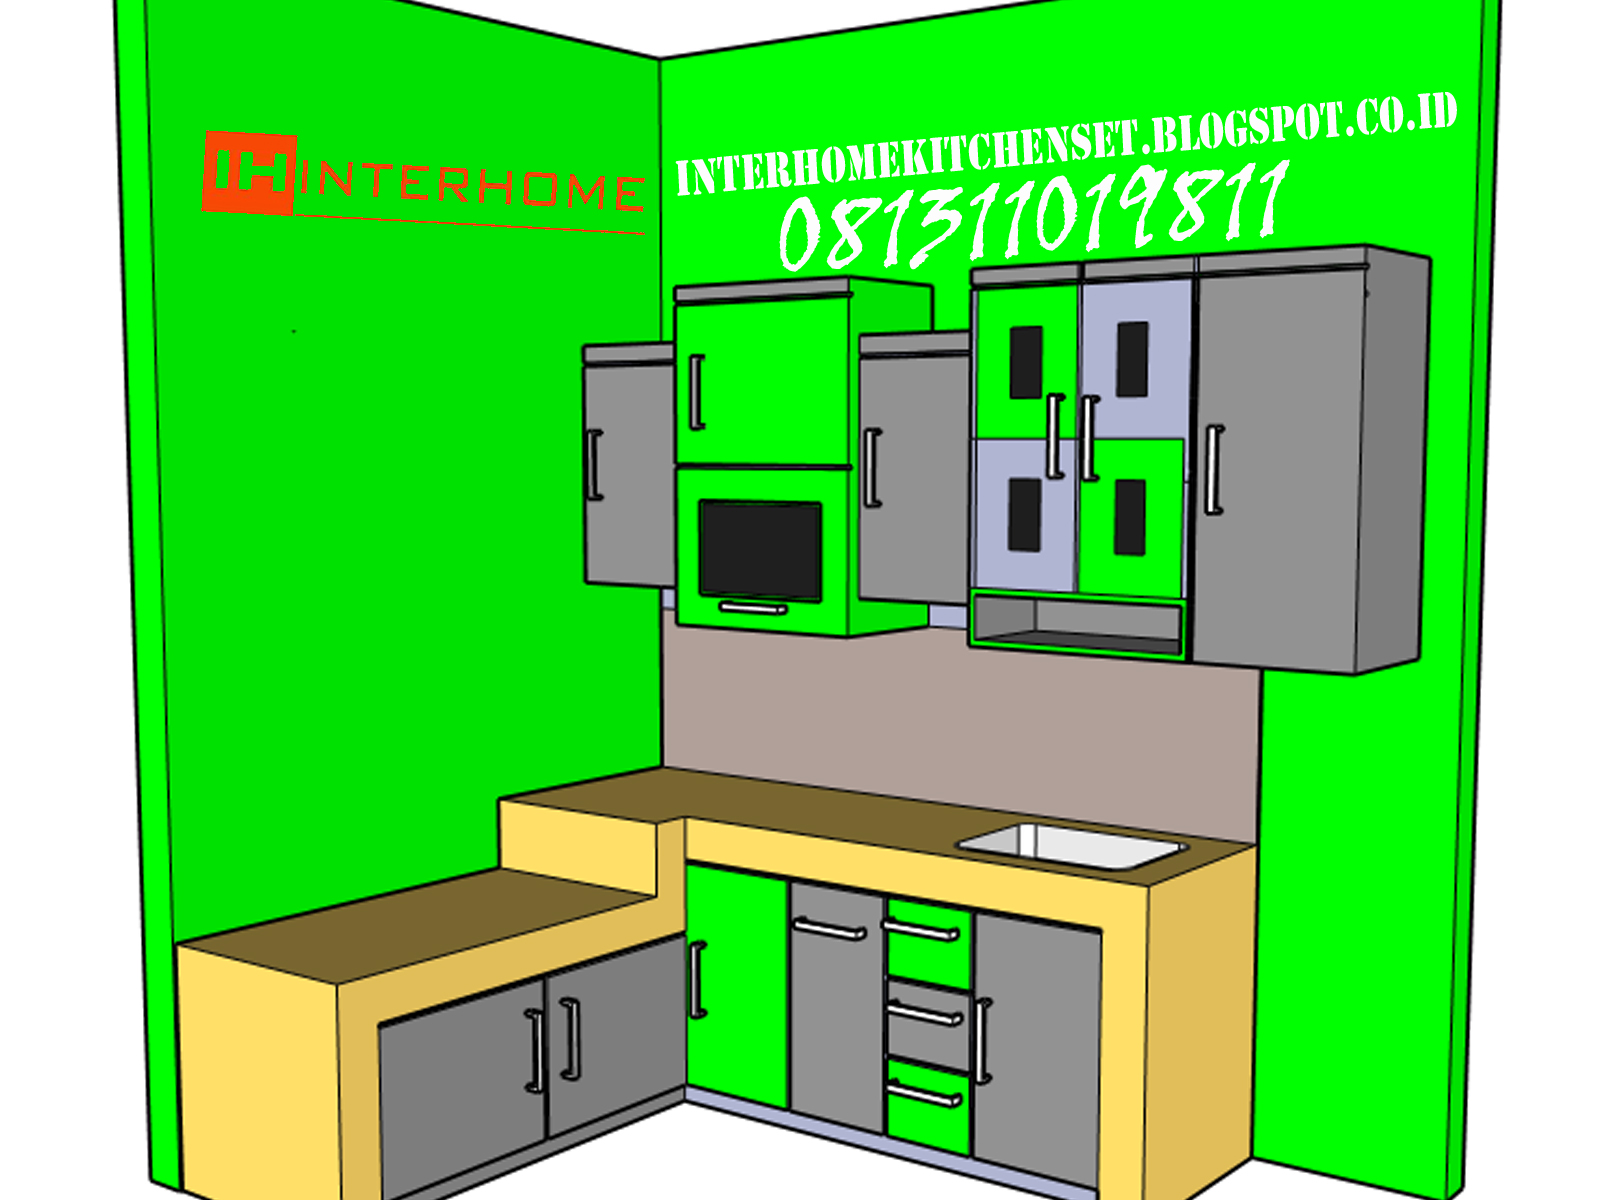 Interhome kitchen set murah gading serpong bsd for Harga kitchen set per meter